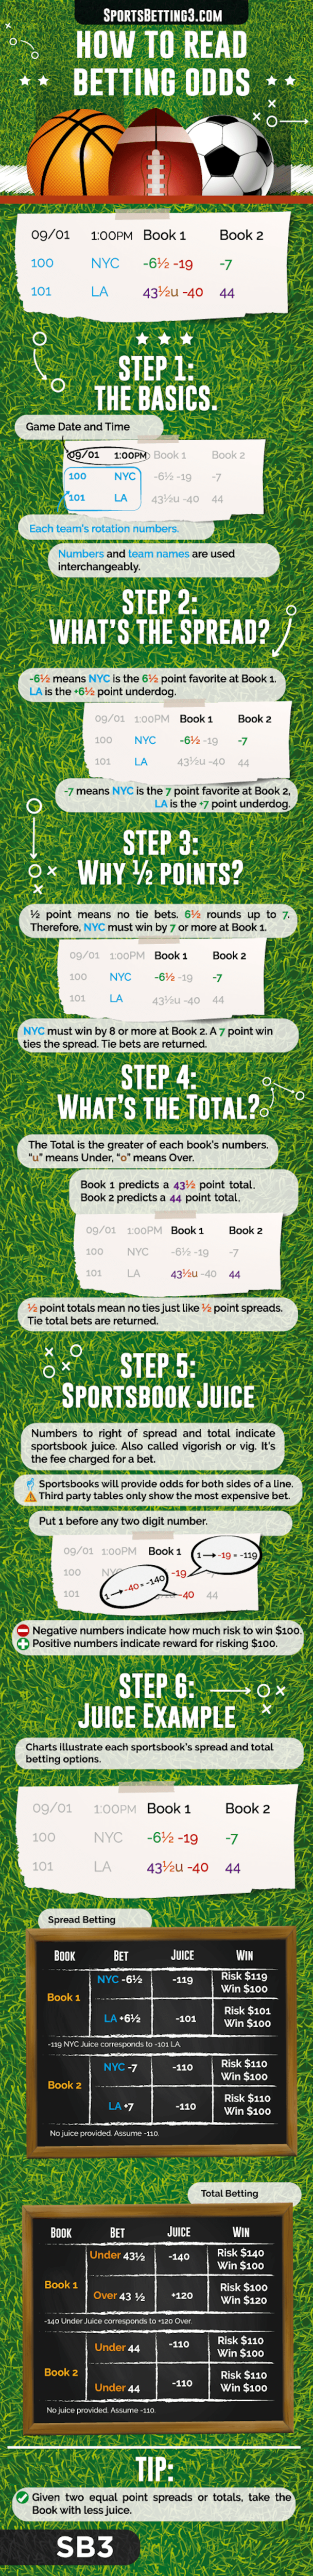 How to Read Sports Betting Odds Image SportsBetting3.com